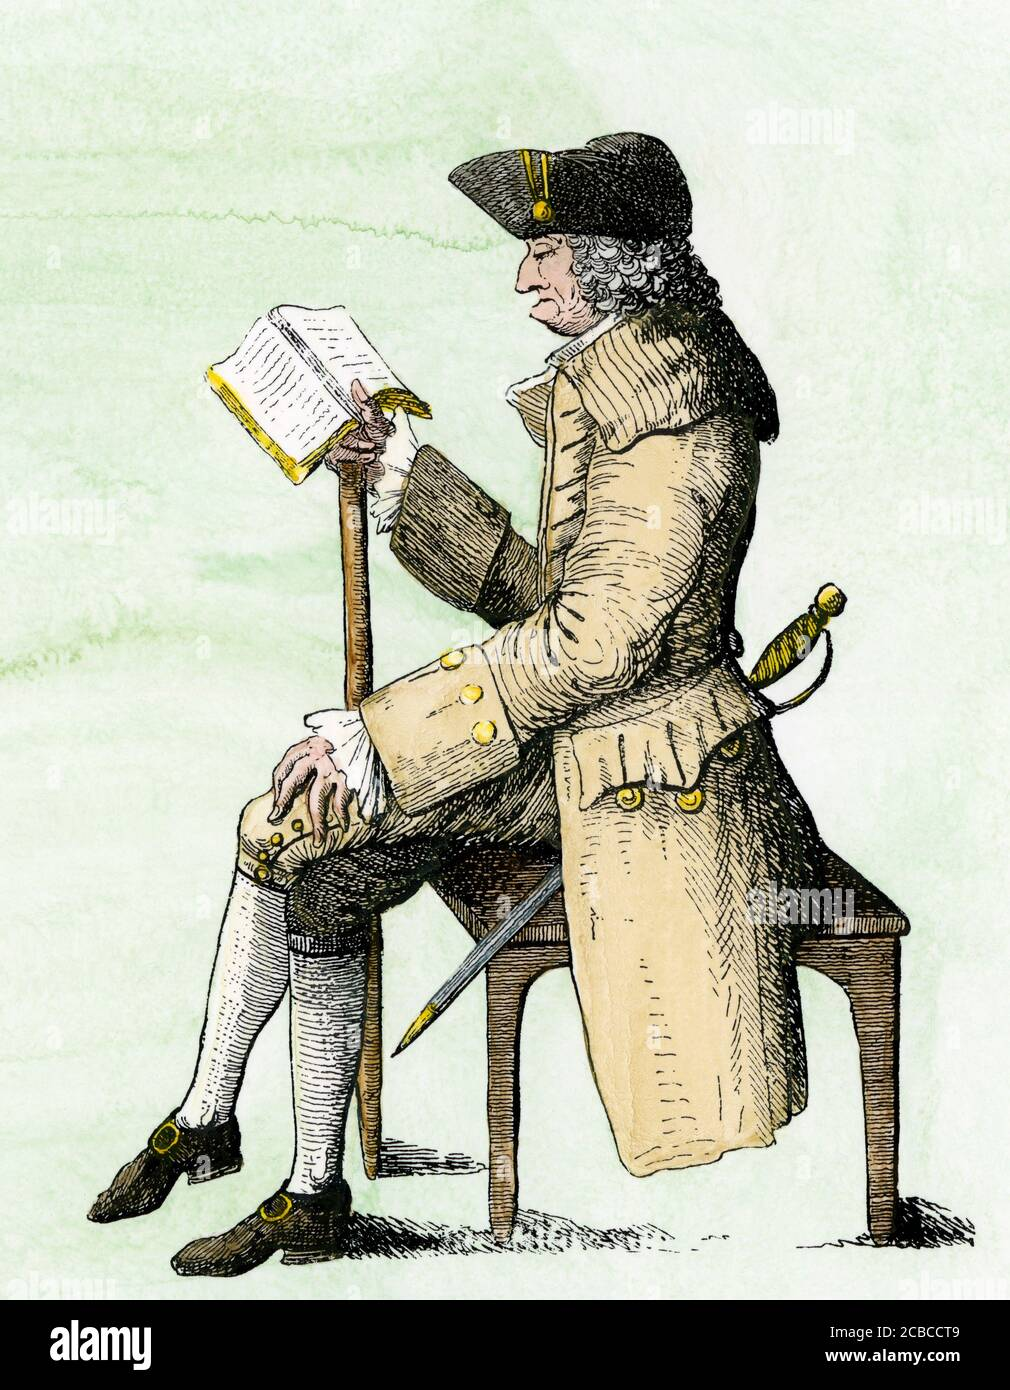 James Oglethorpe in old age, 1785. Hand-colored woodcut Stock Photo